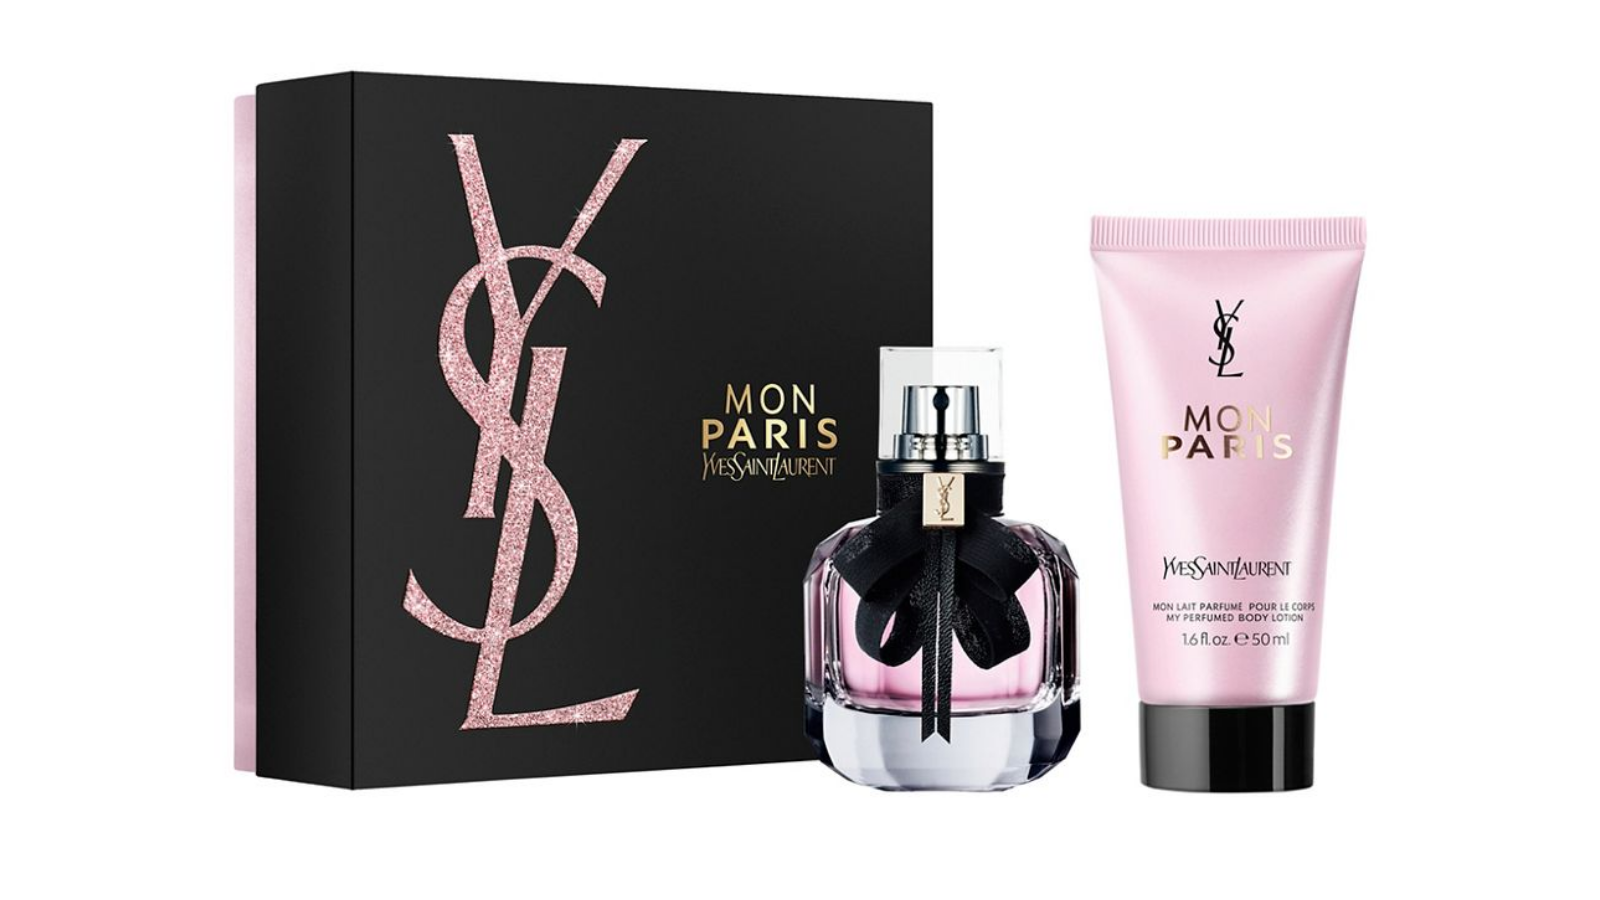 b677a97a0 Whether you're going on a night out, a date or want to impress at a work  event, a spritz of YSL Mon Paris will get you in the mood.